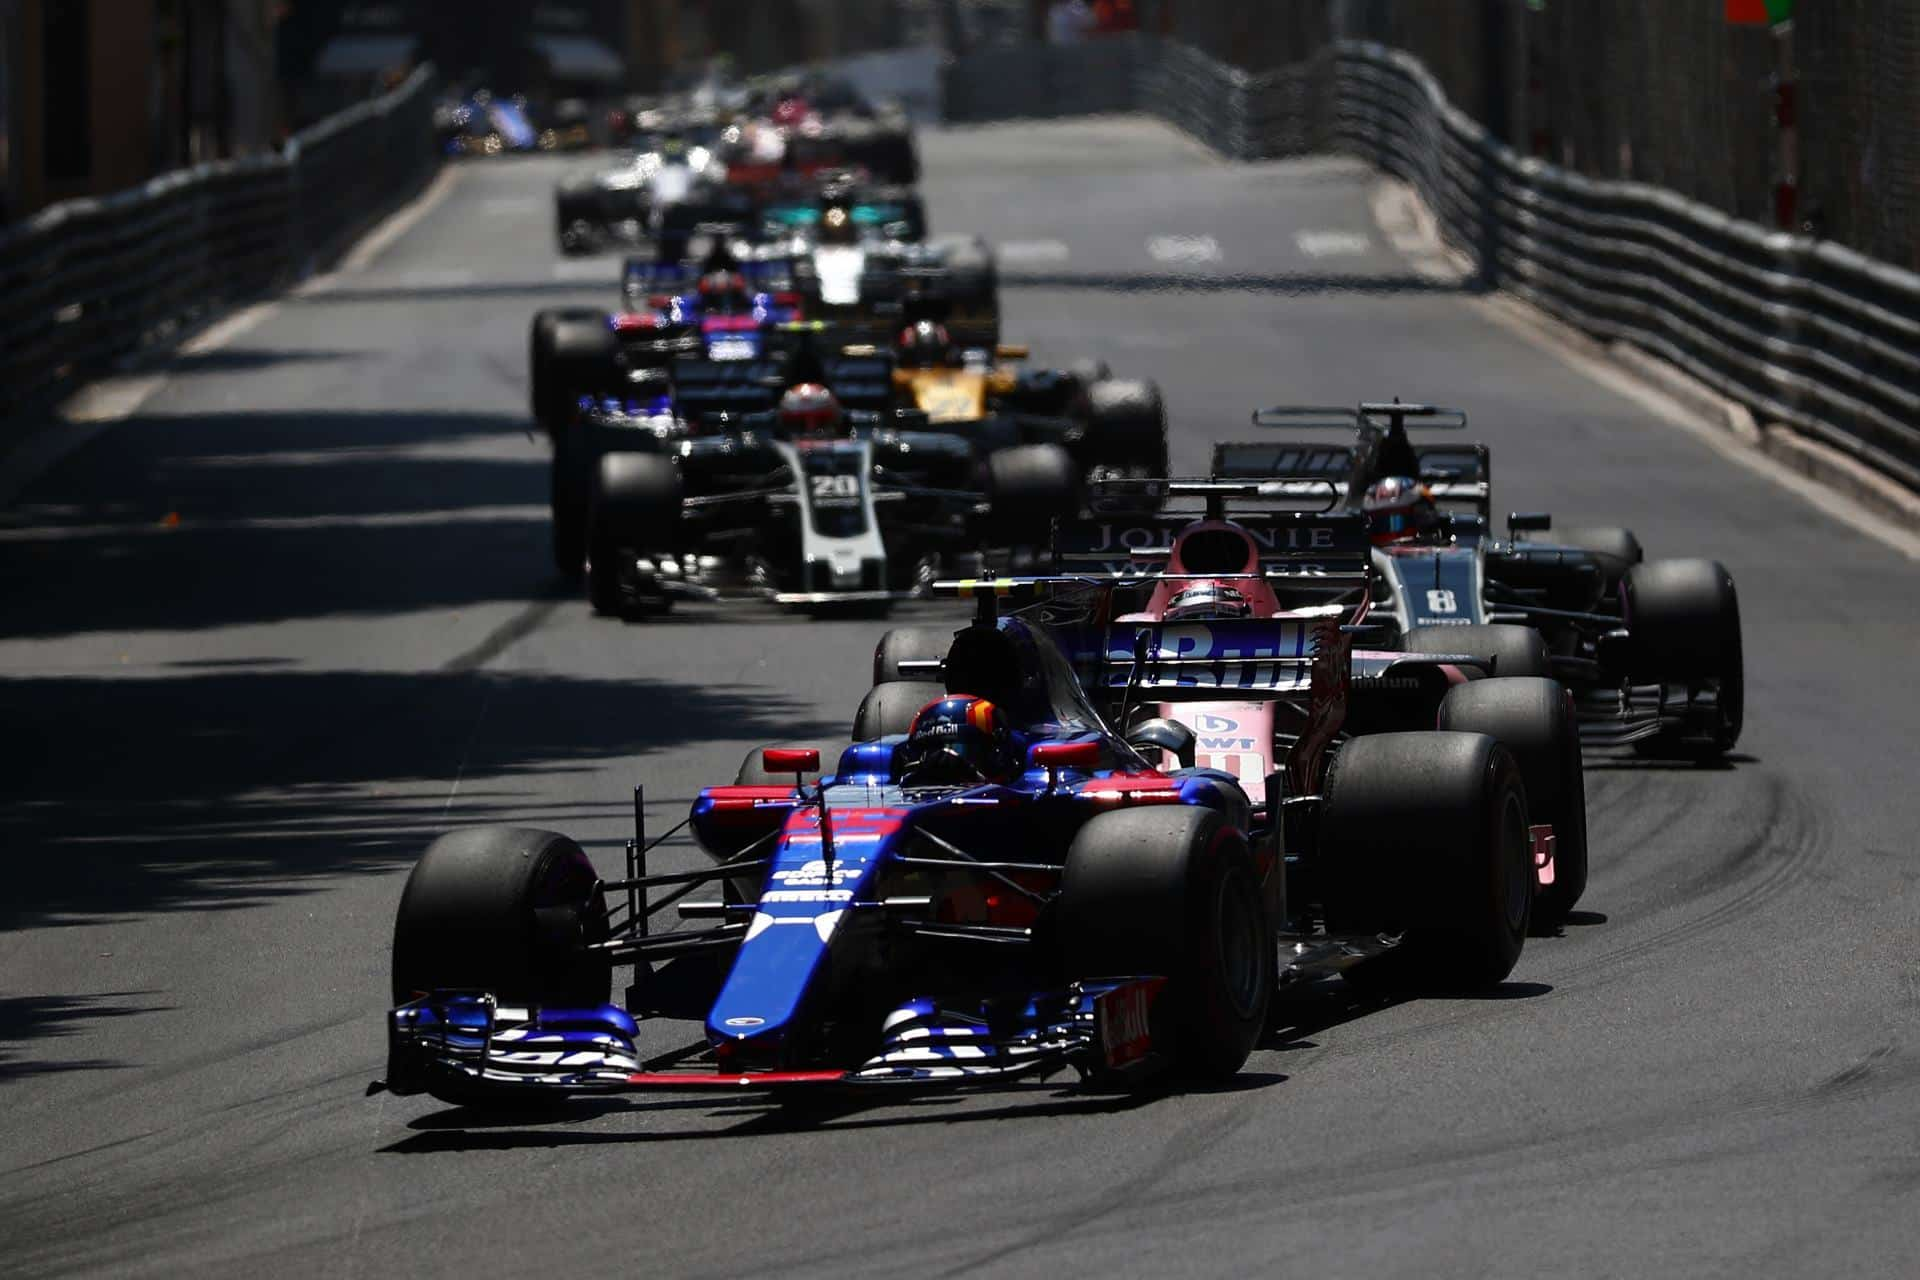 Sainz leads midfield Monaco GP F1 2017 Photo Red Bull